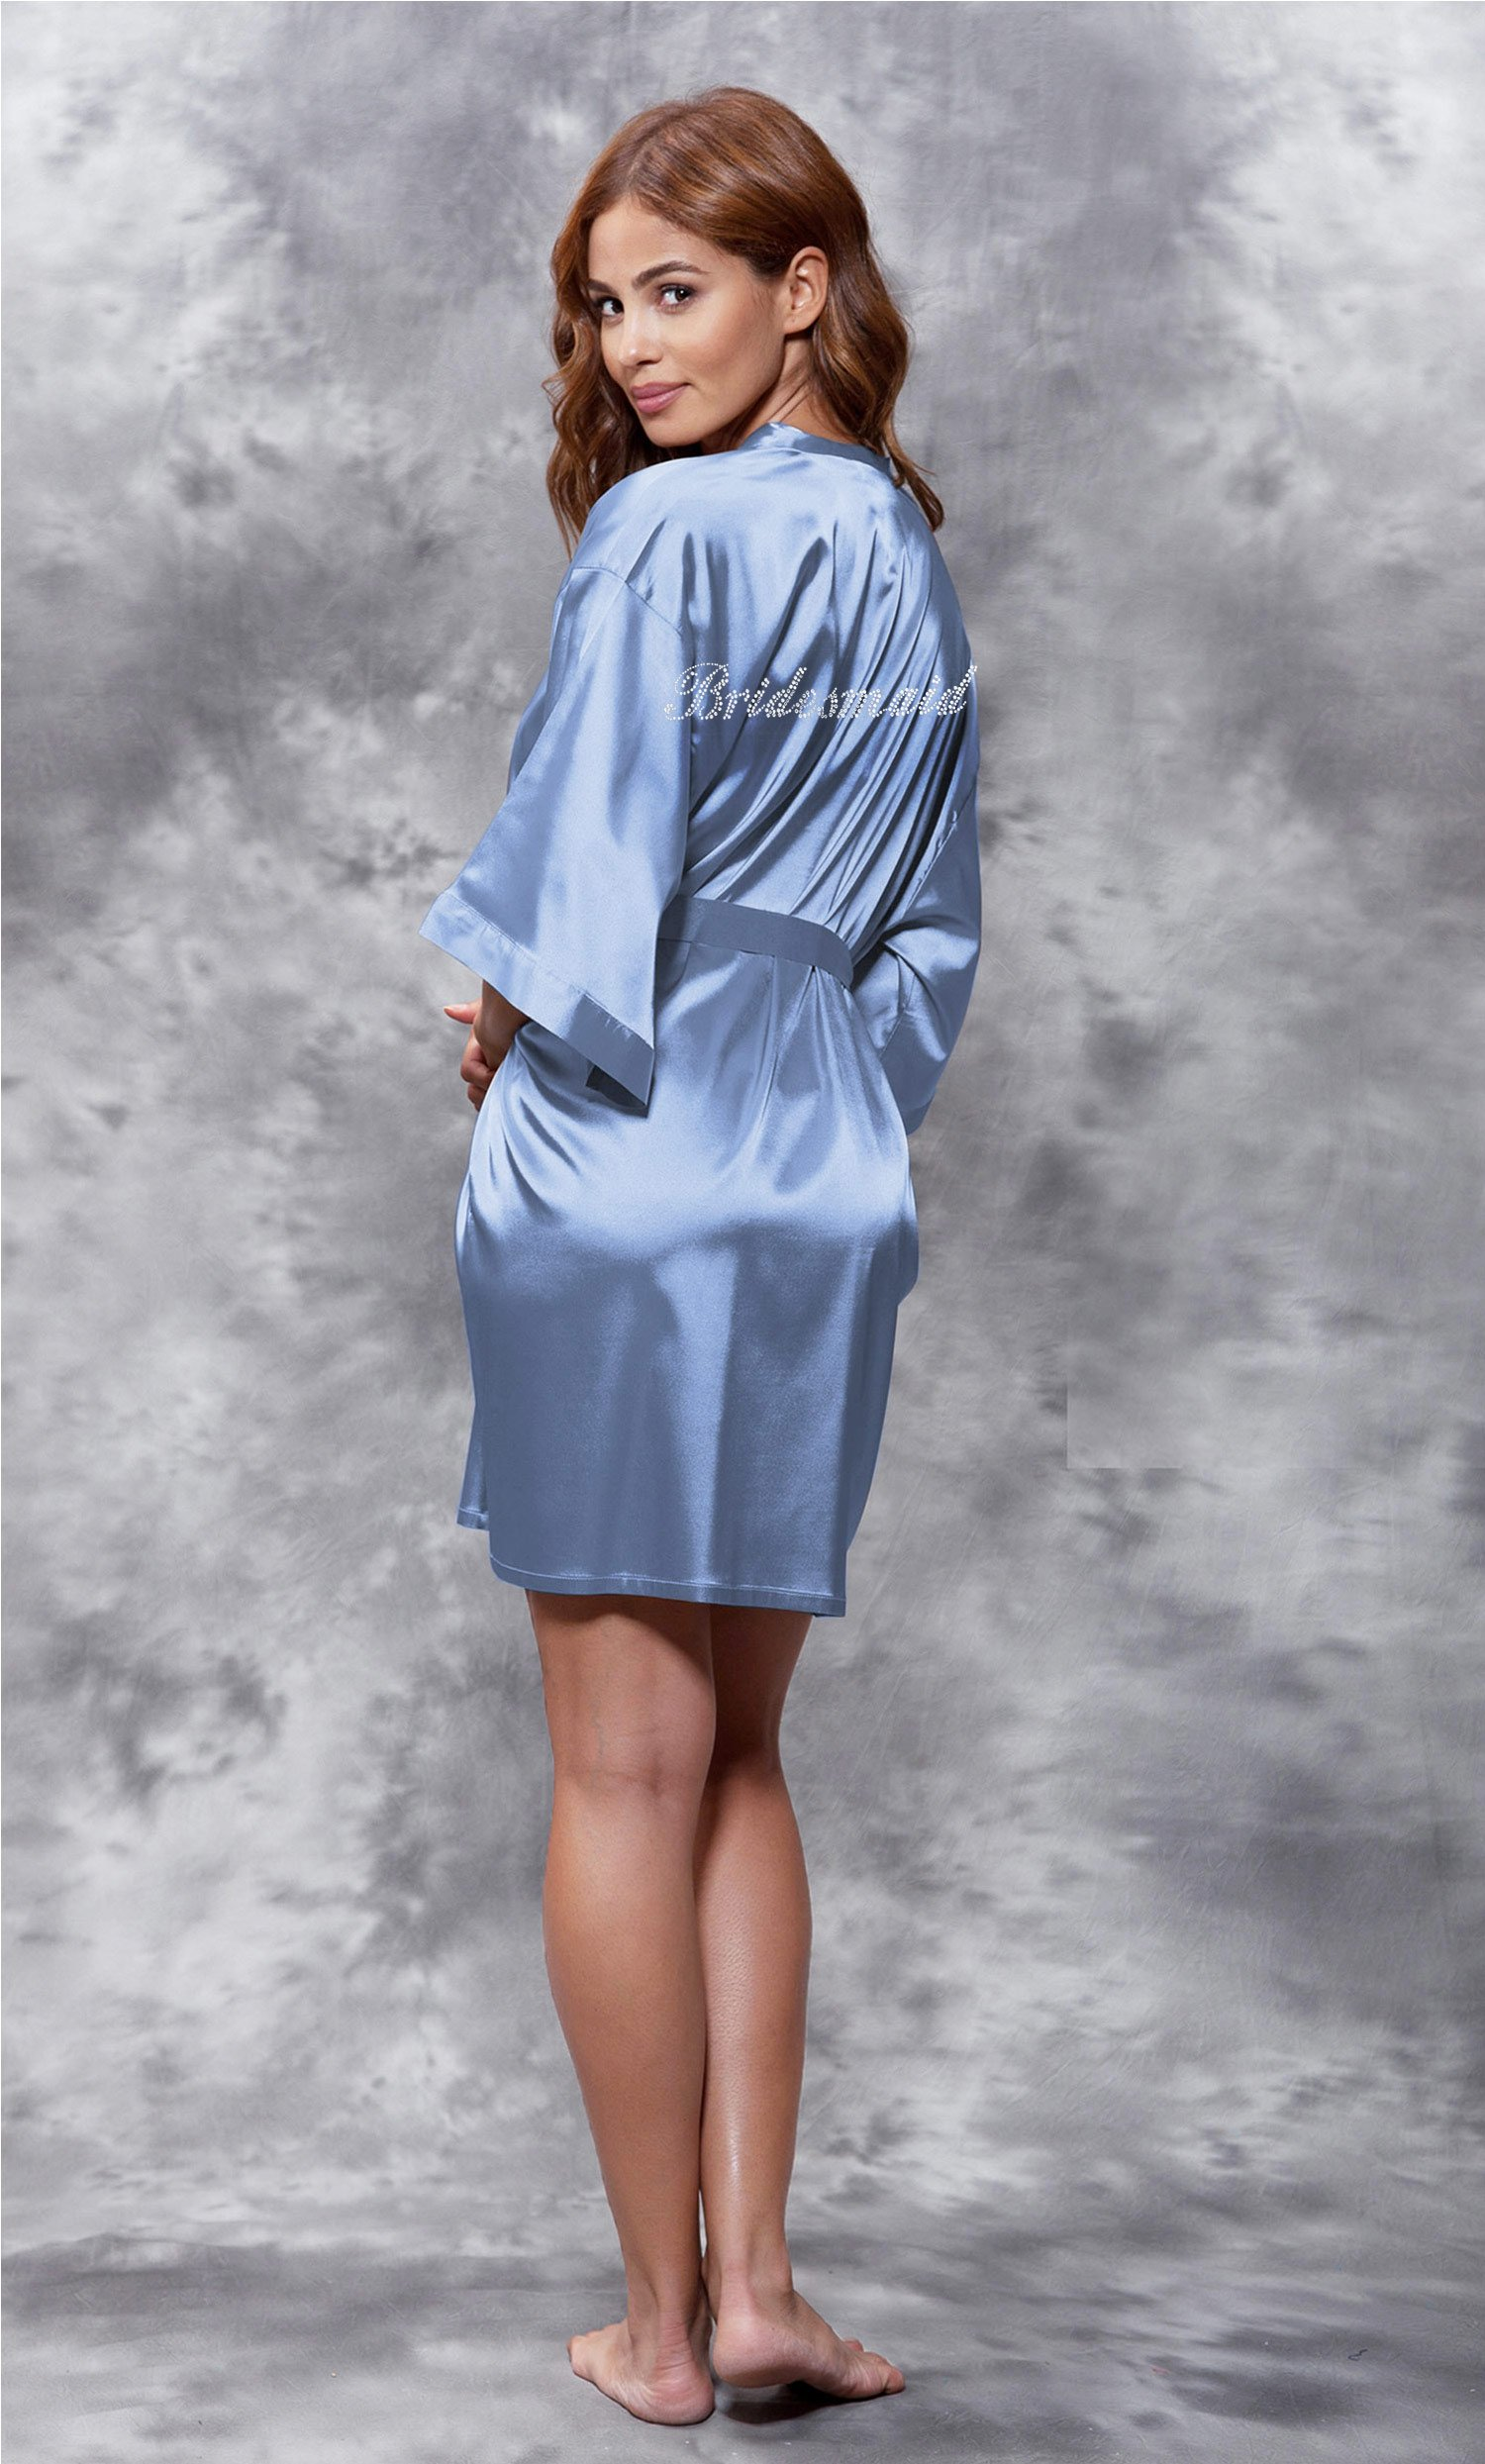 Cheap Bridesmaid Robes    Bridesmaid Clear Rhinestone Satin Kimono  Riverside Blue Short Robe - Wholesale bathrobes b432f3e65